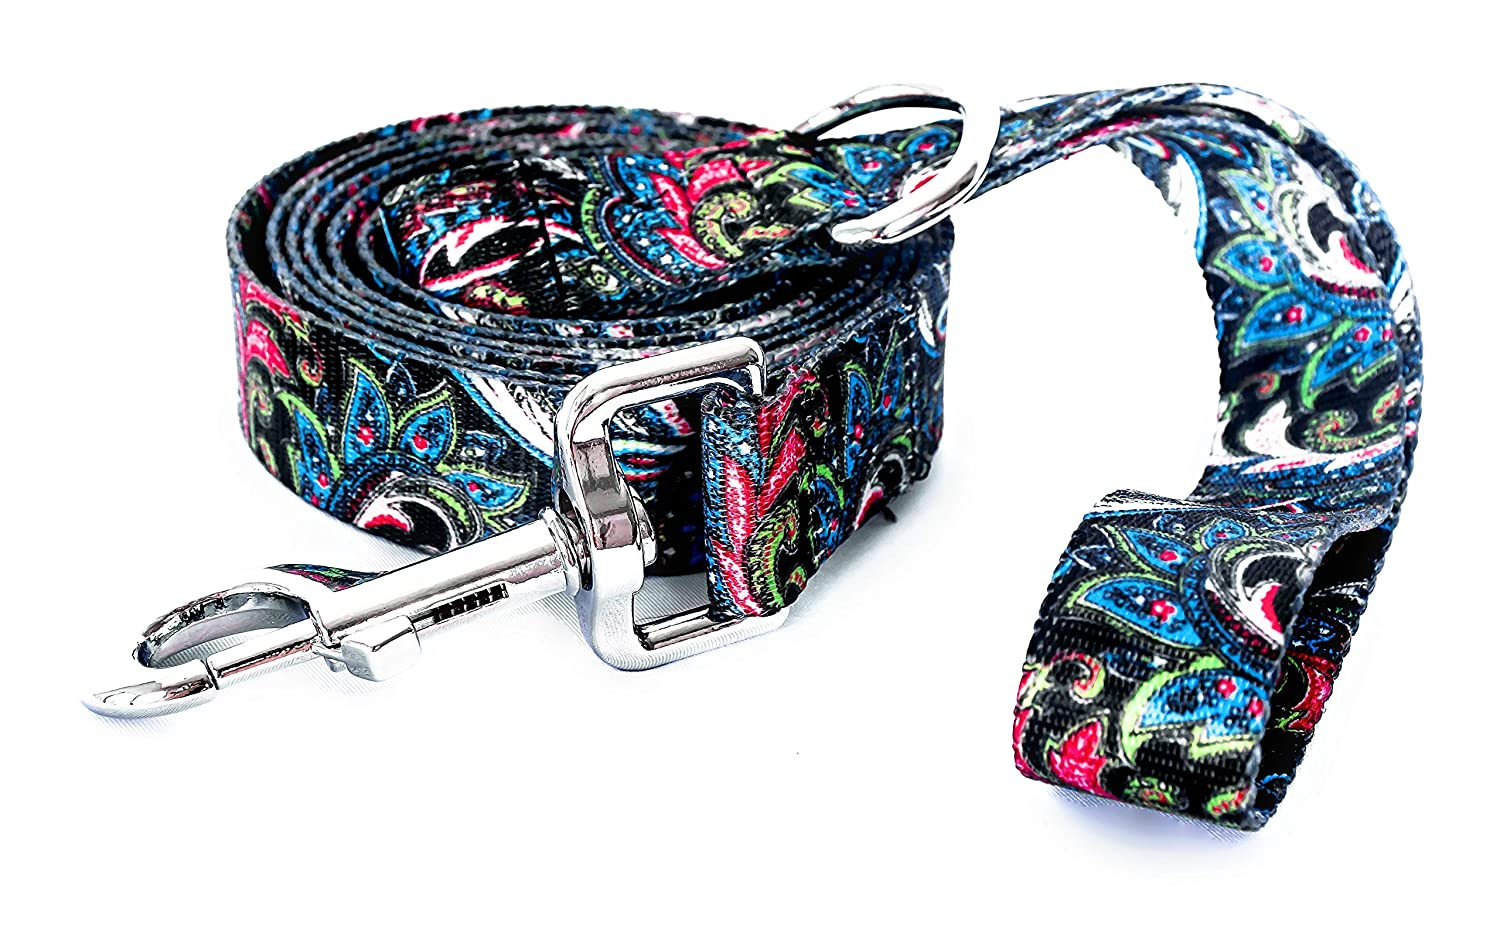 Alpha Lifestyle Pets Dog Leash//Lead 6 Foot Length Teal Paisley Pattern with Matching Collar Sold Separate